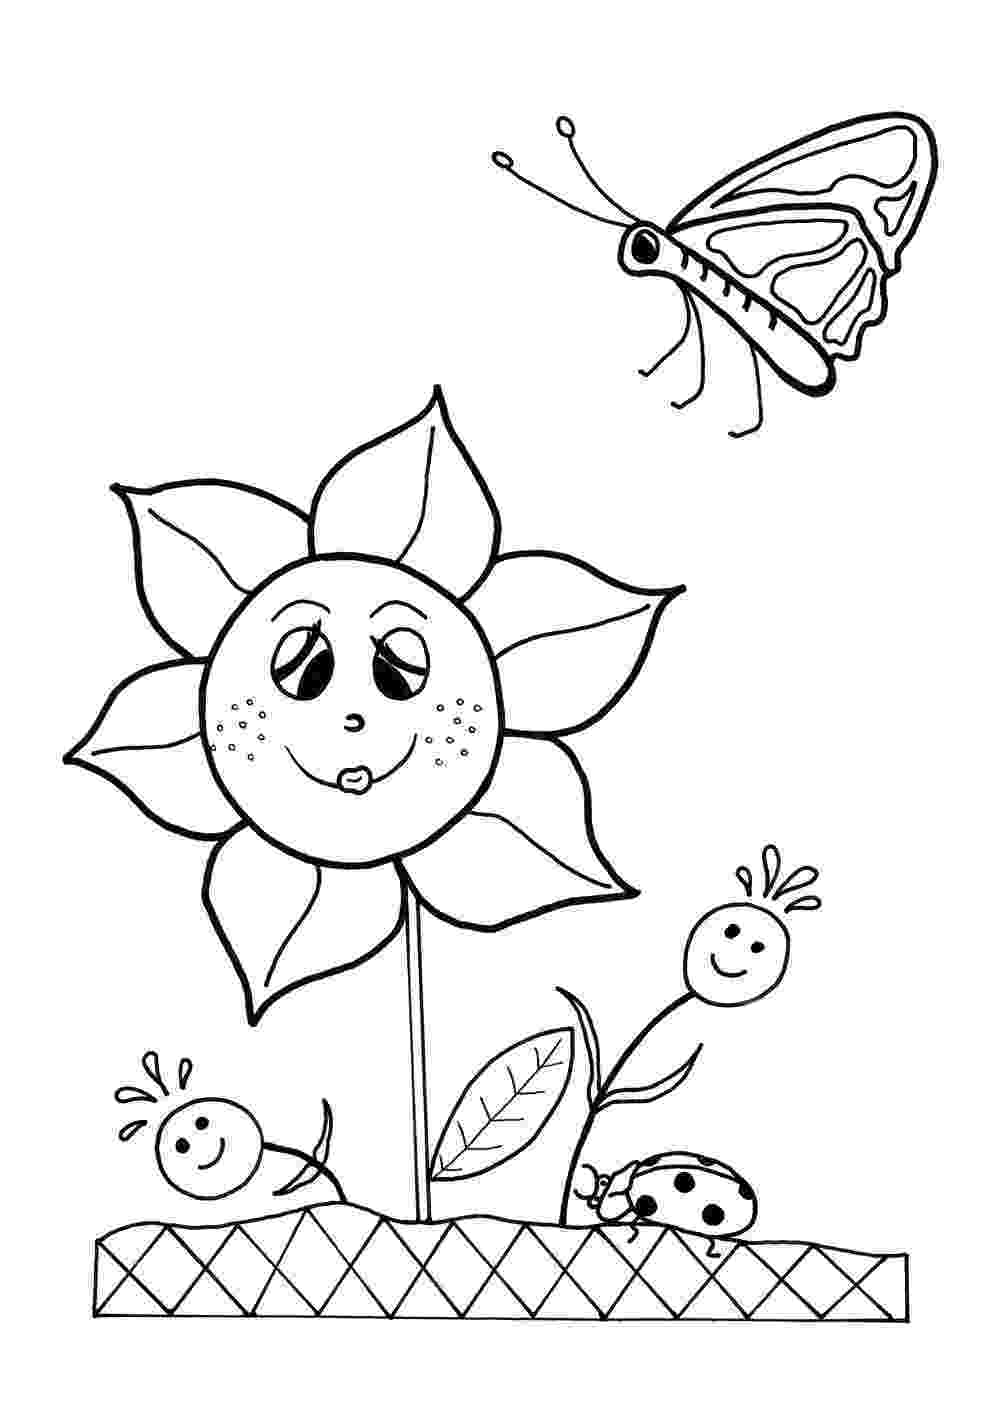 spring flower coloring pages spring flower coloring pages to download and print for free coloring spring pages flower